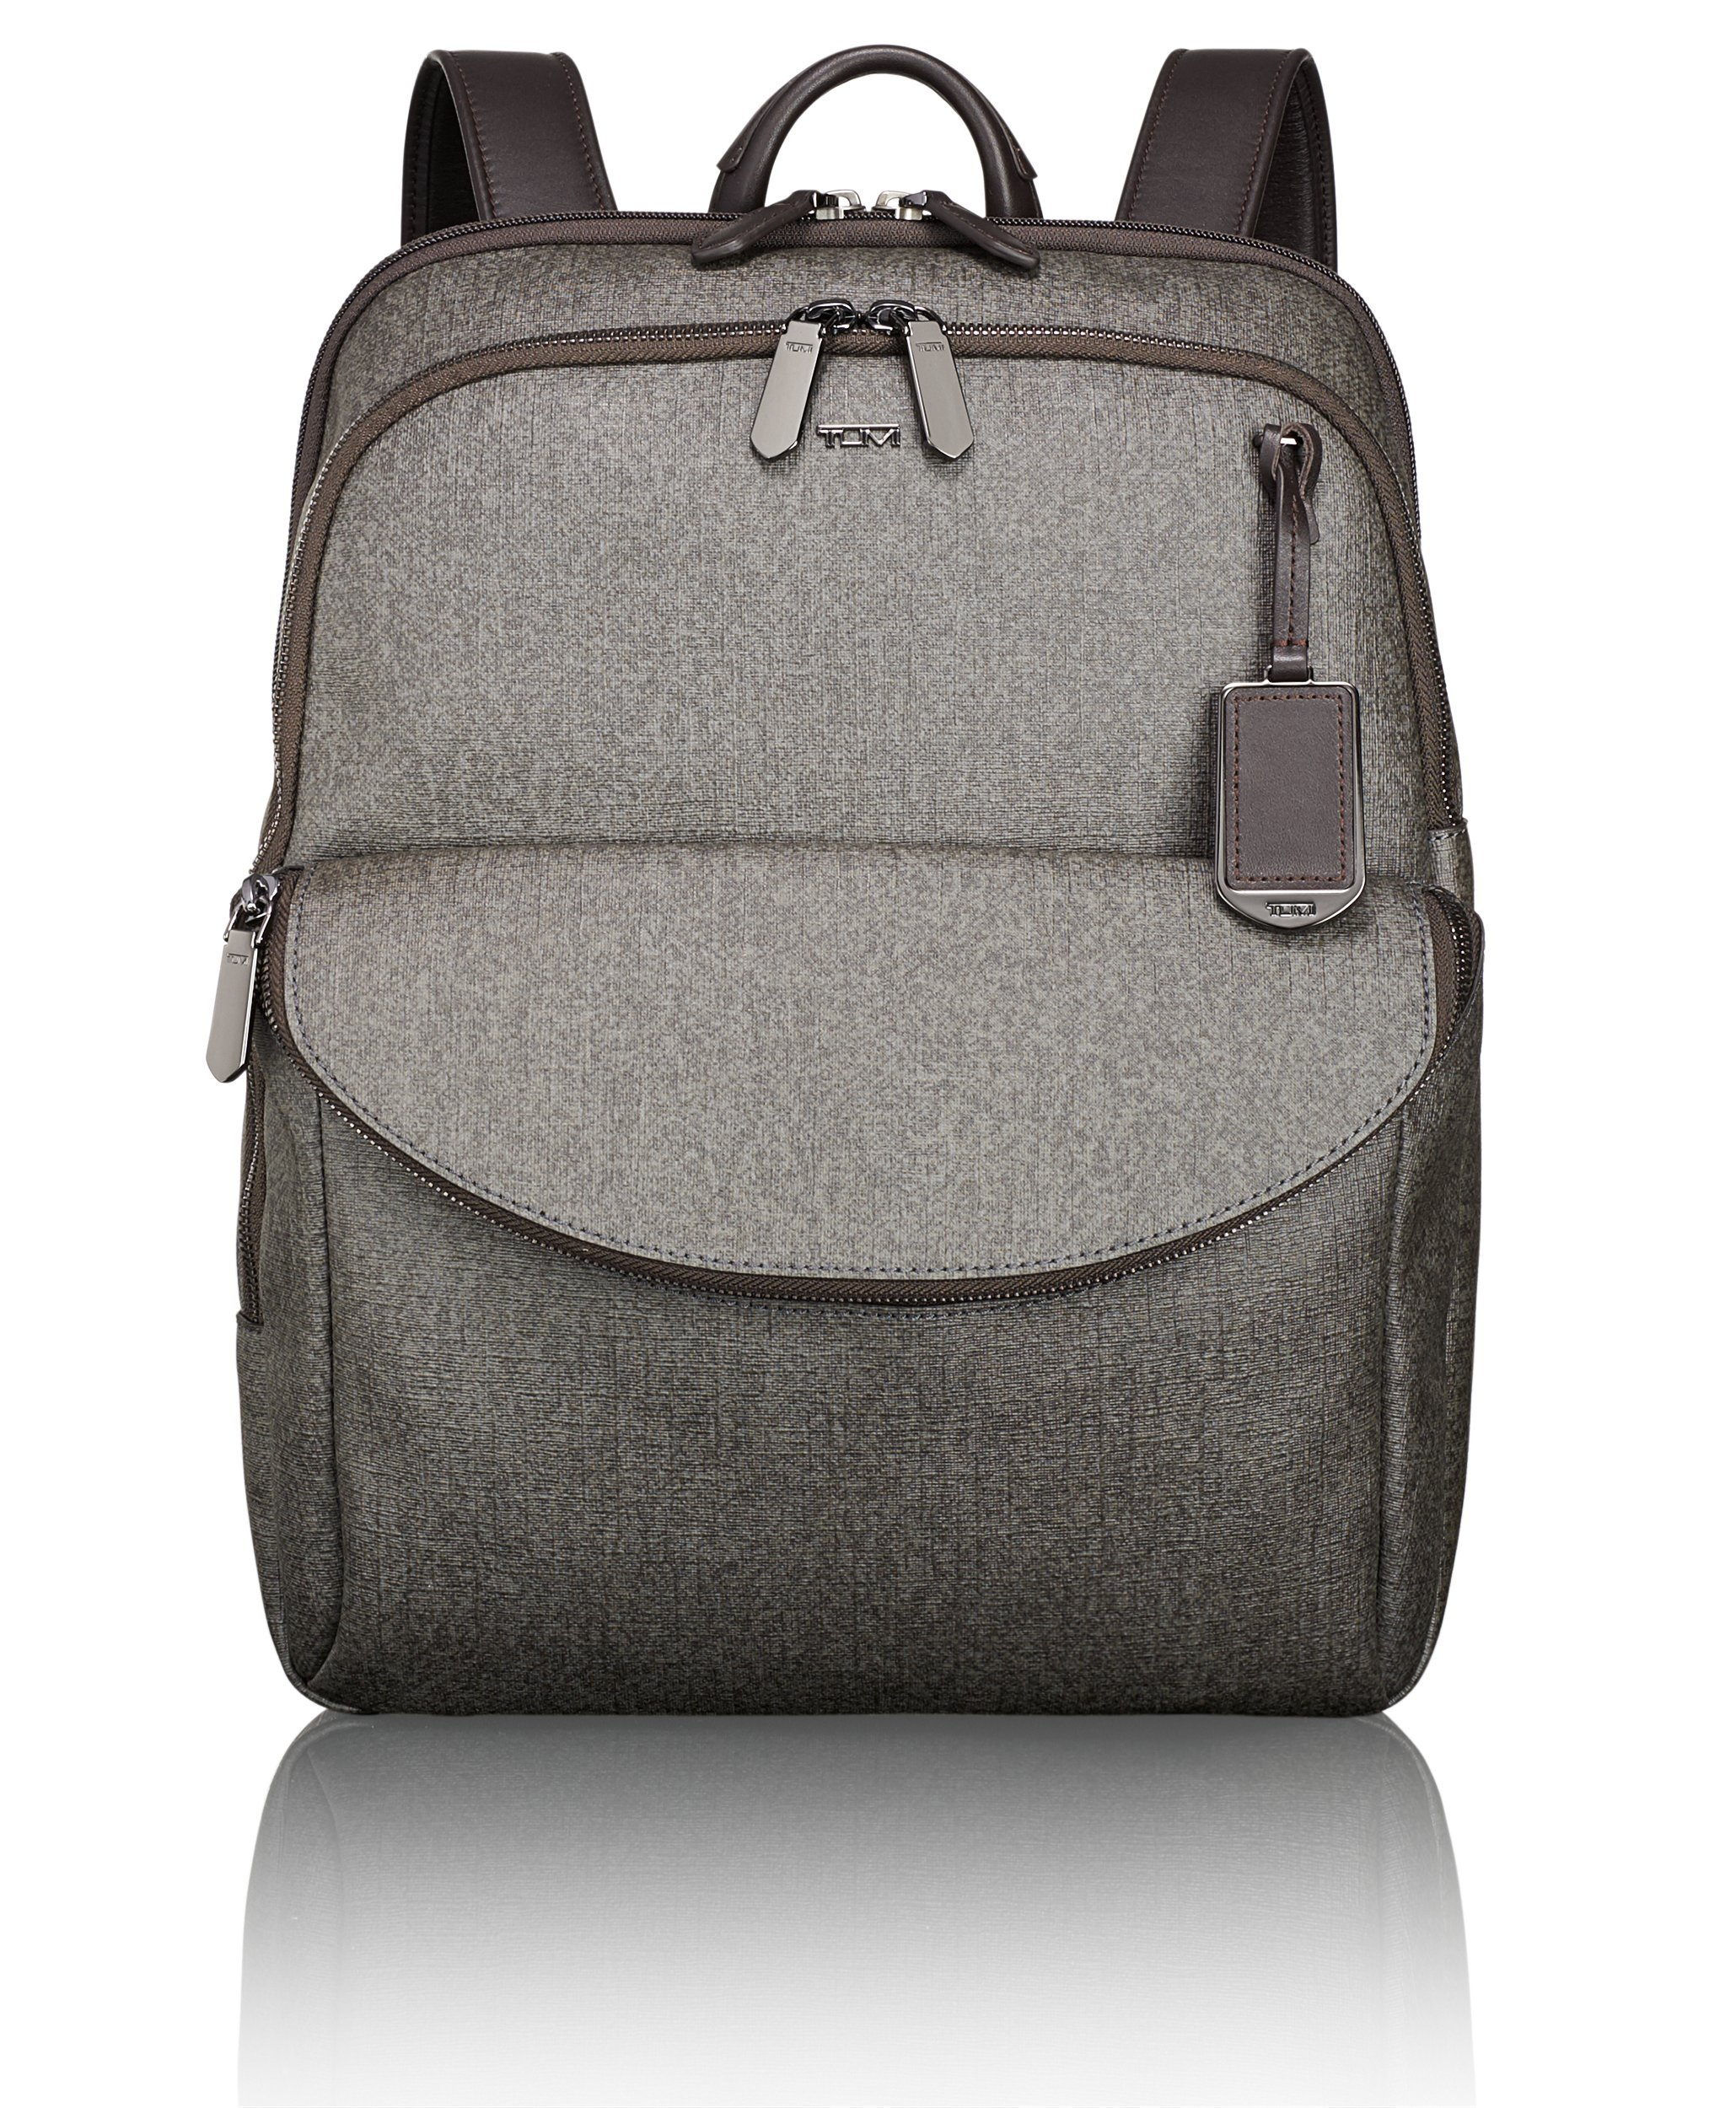 Tumi Sinclair Hanne Backpack, Earl Grey